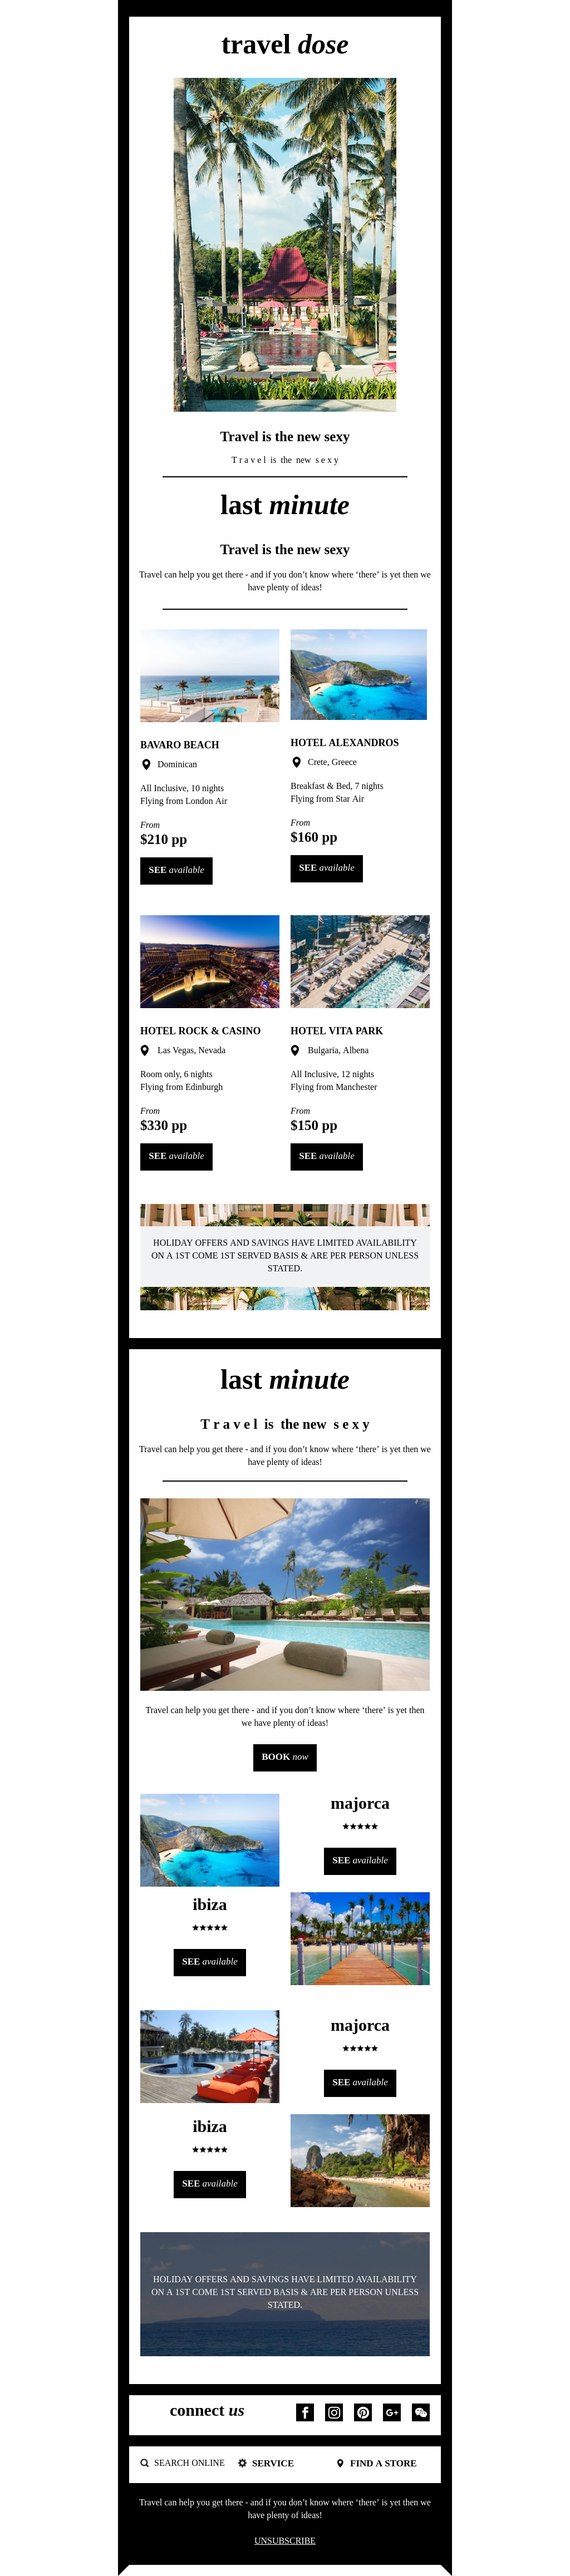 Postcard-looking, green and black travel template for ecommerce companies.